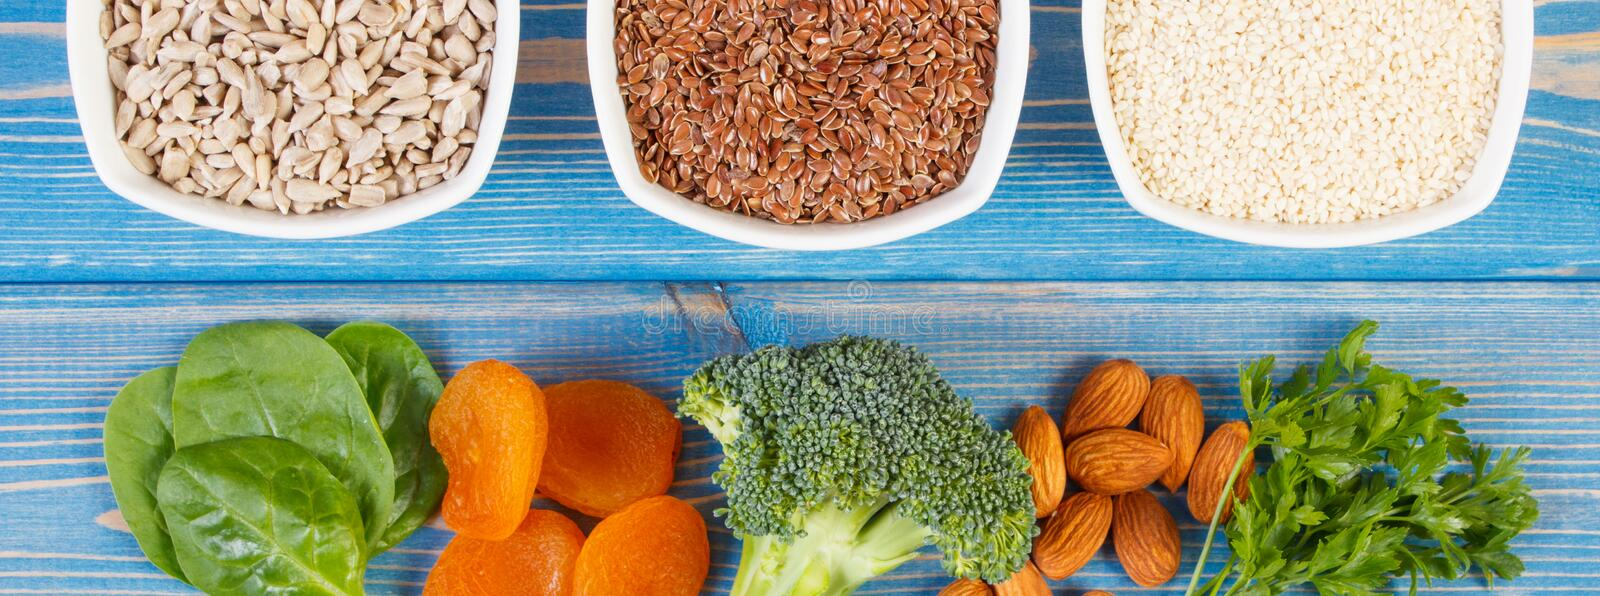 Ingredients containing calcium and dietary fiber, concept of healthy nutrition. Ingredients or products containing calcium and dietary fiber, natural sources of stock photo